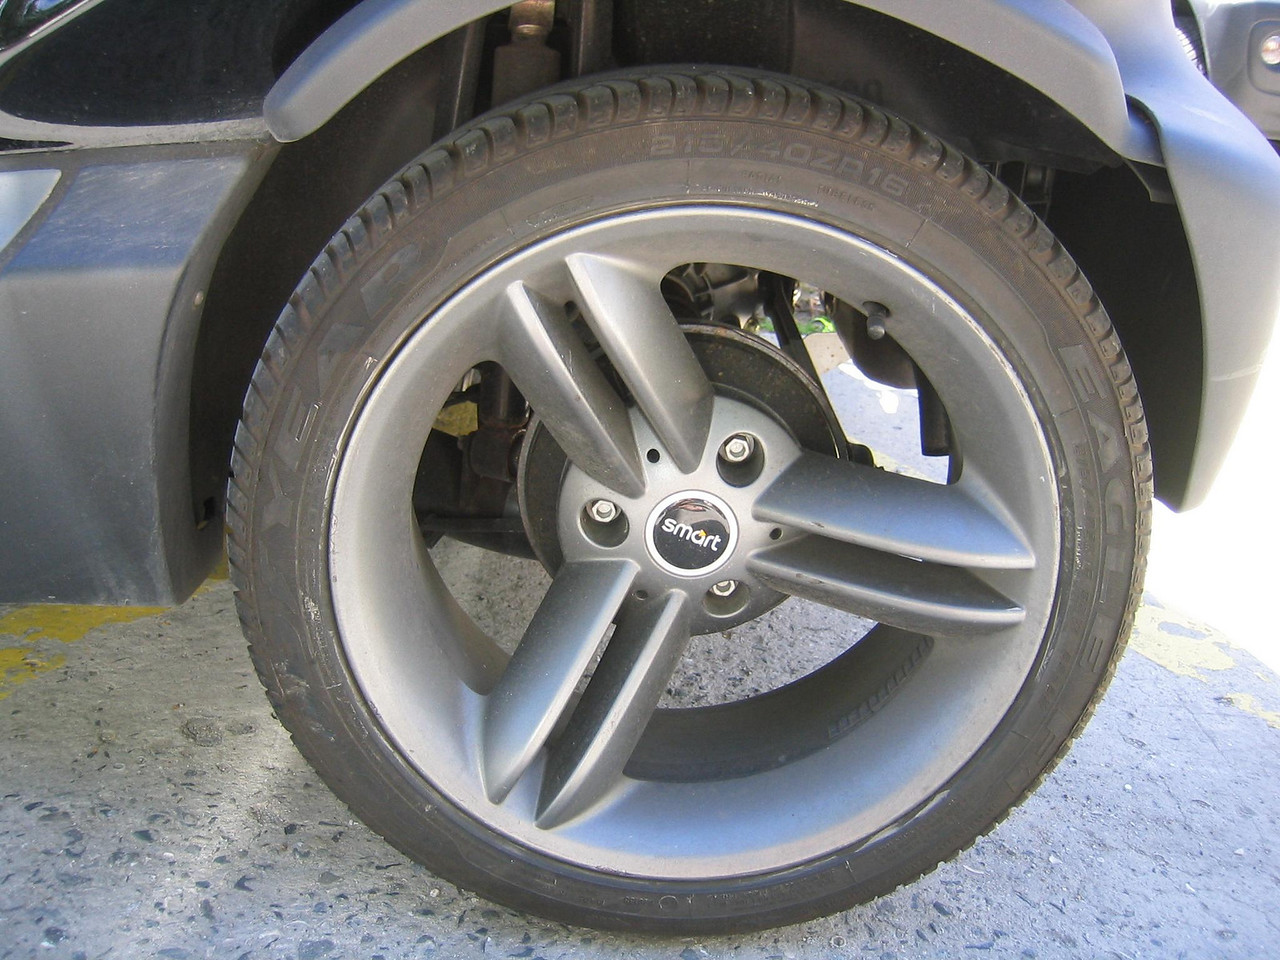 The smartly stylish wheel of a  Smart Car.